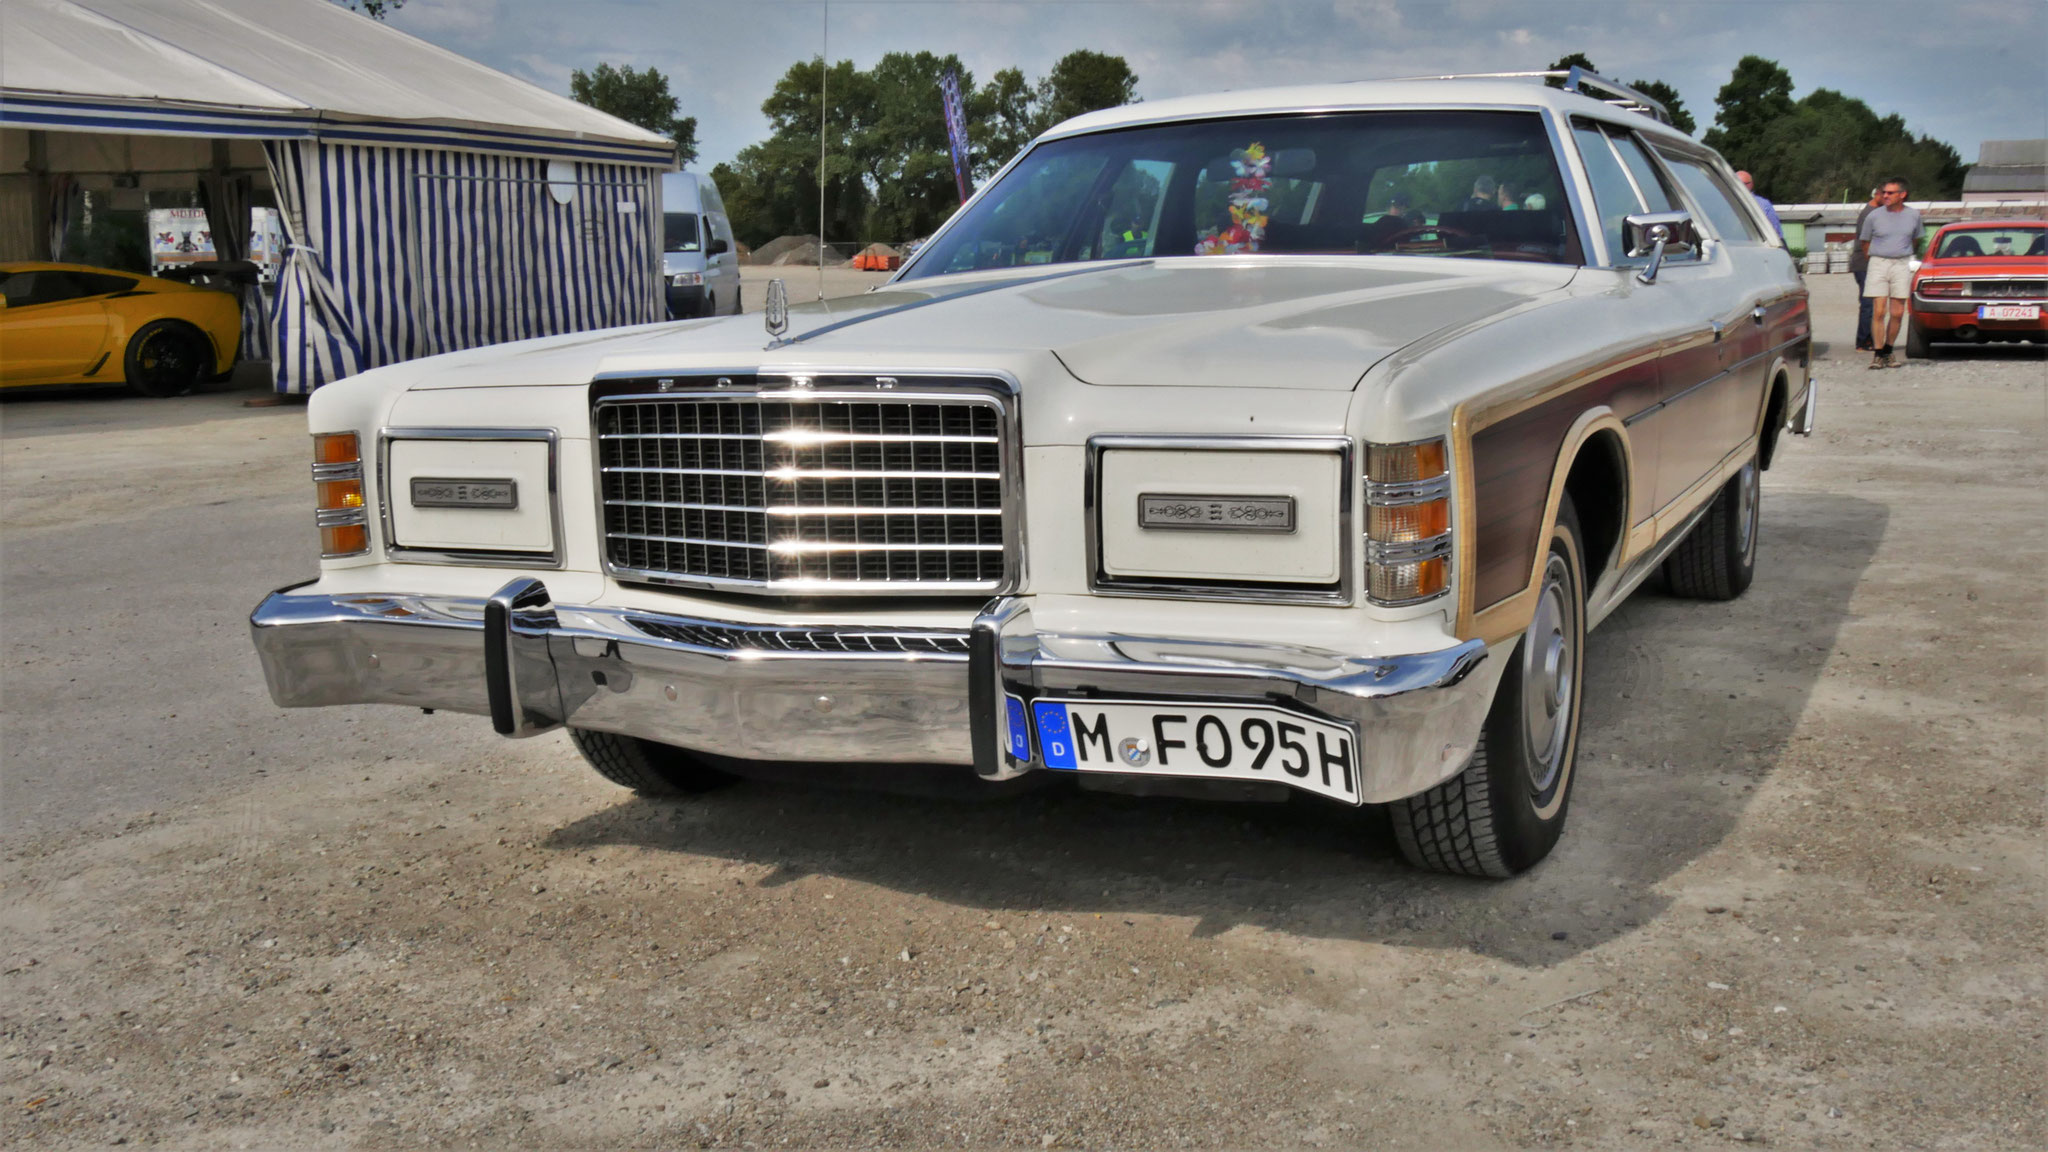 Ford Country Squire - M-FO-95H